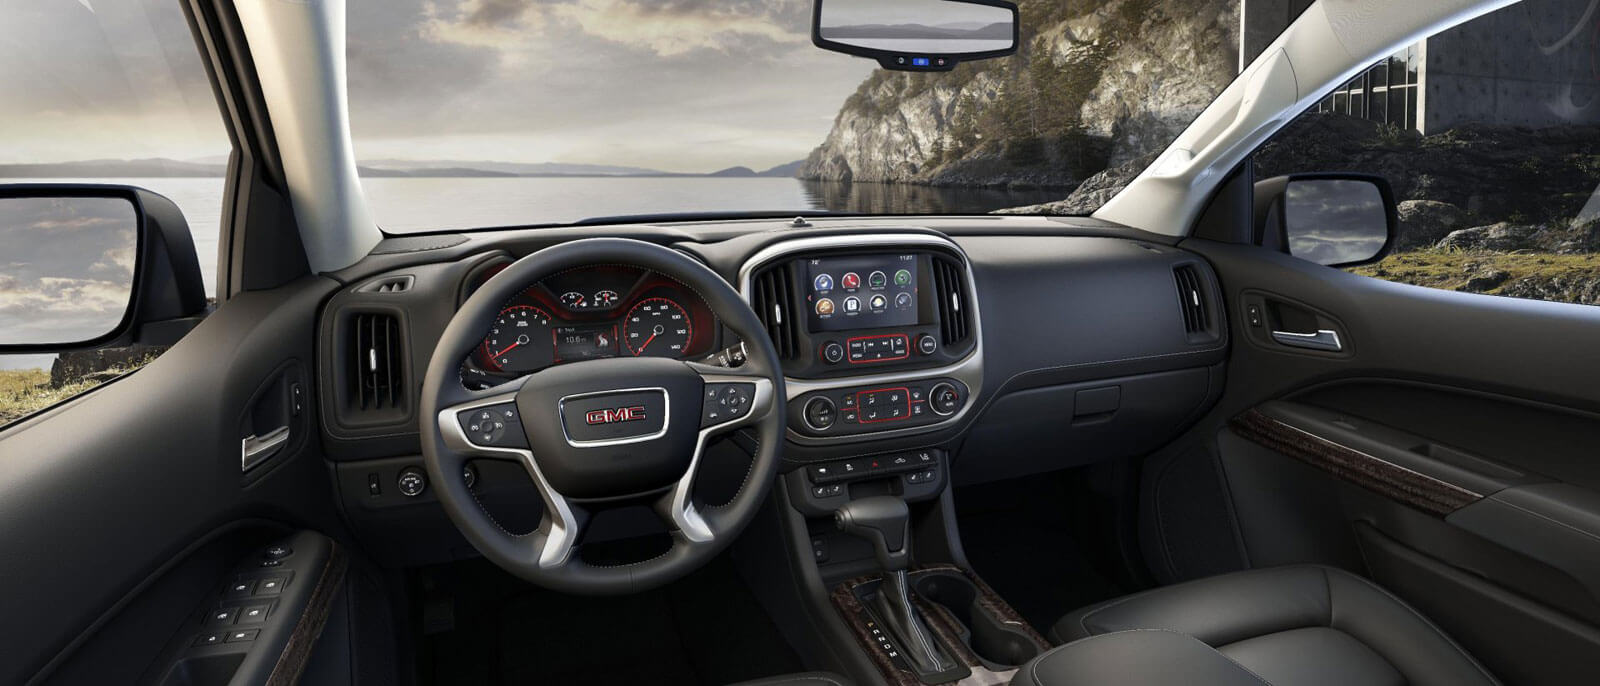 2016 Gmc Canyon Interior ...